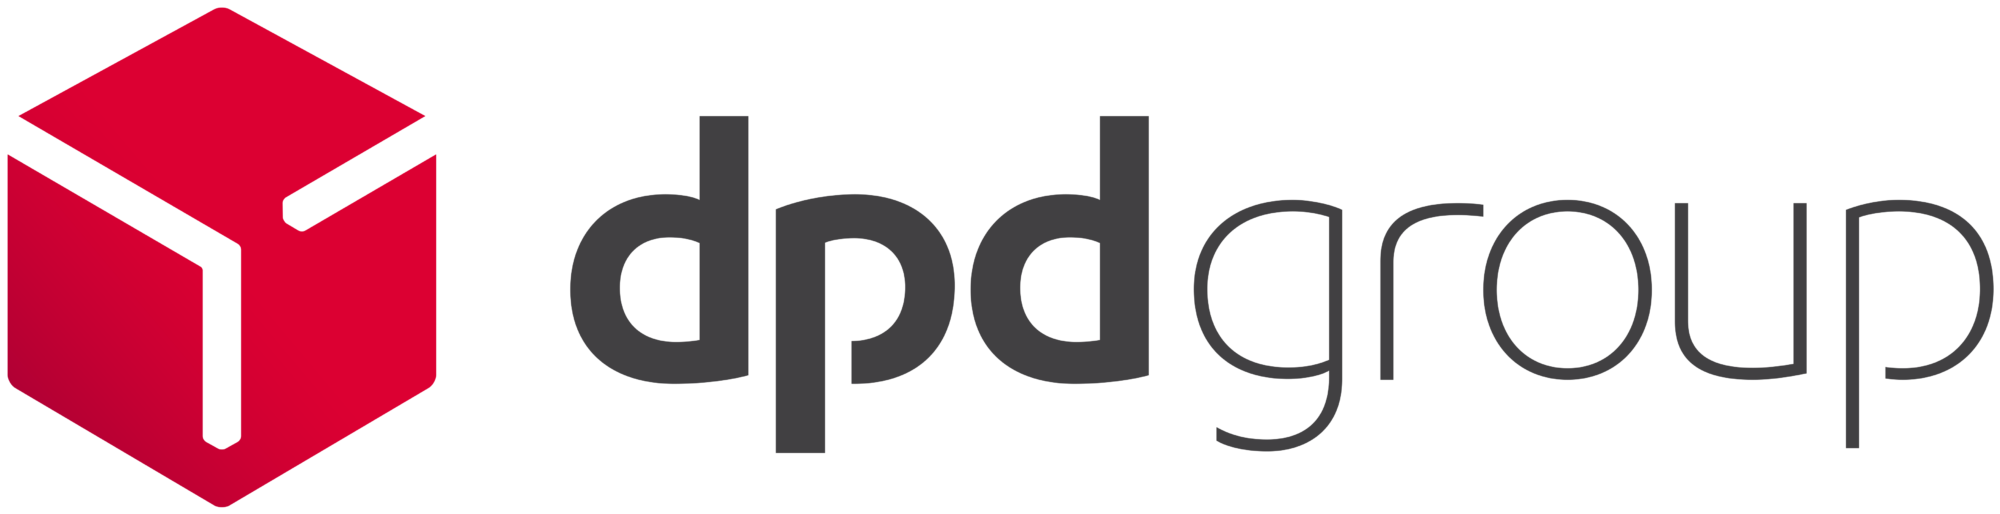 C. DPD Group